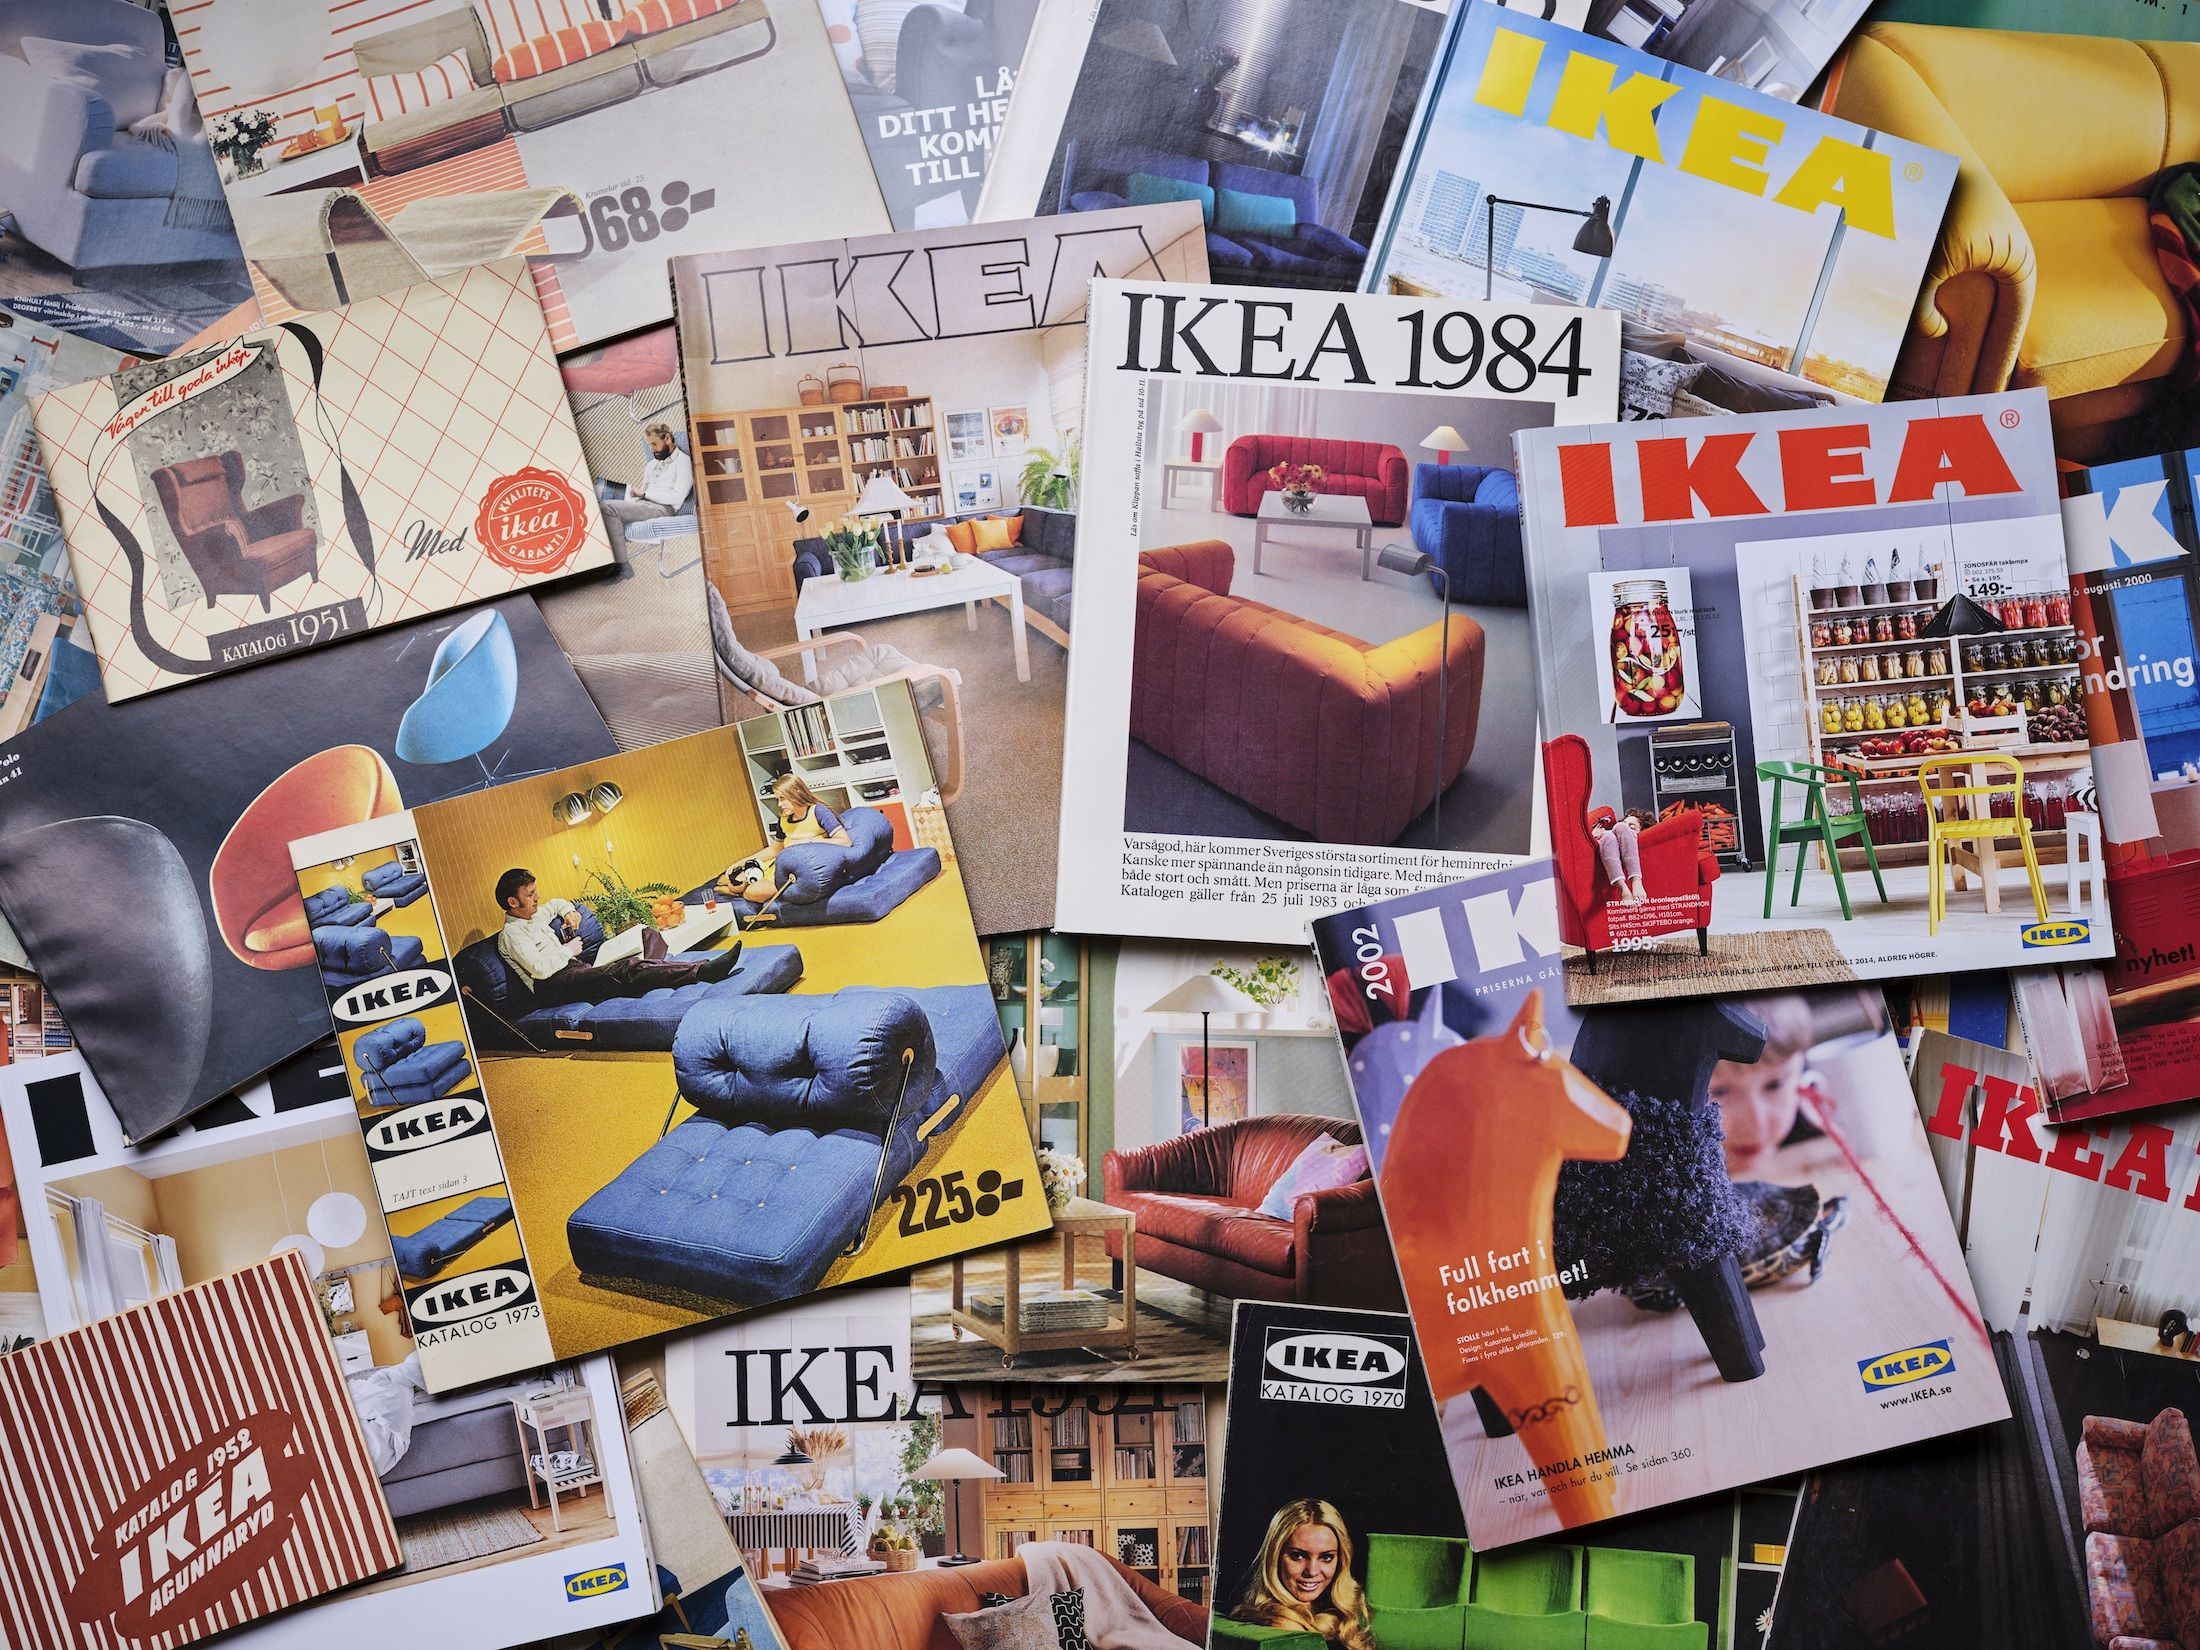 Commemorate the iconic IKEA Catalogue with these new Zoom backgrounds